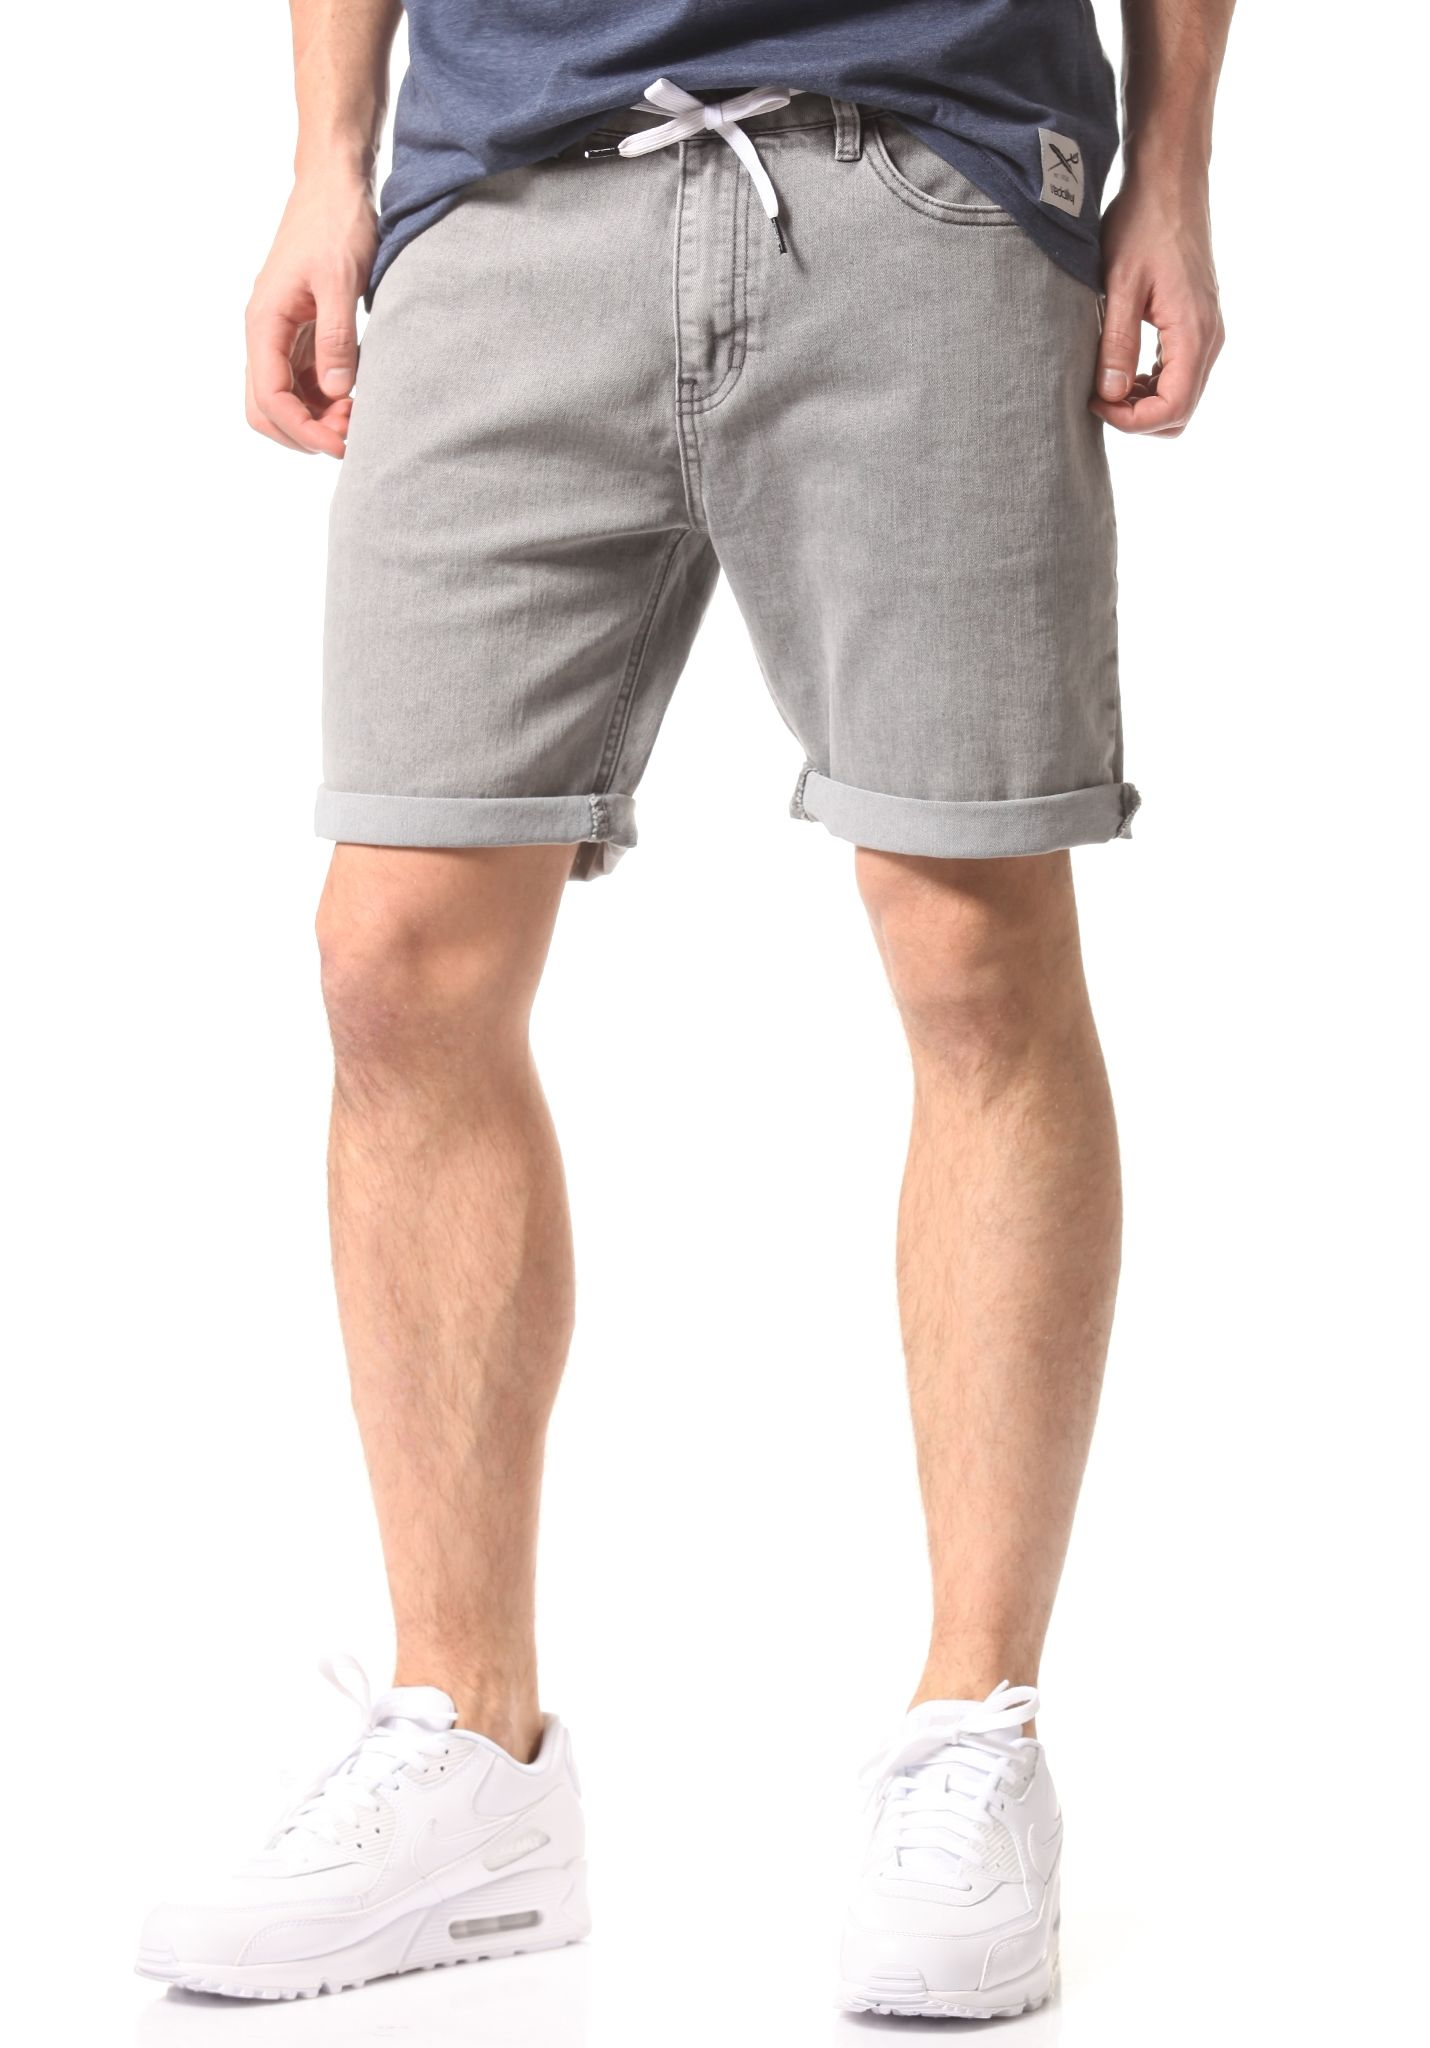 Iriedaily Slim Shot2 Denim - Shorts for Men - Grey - Planet Sports